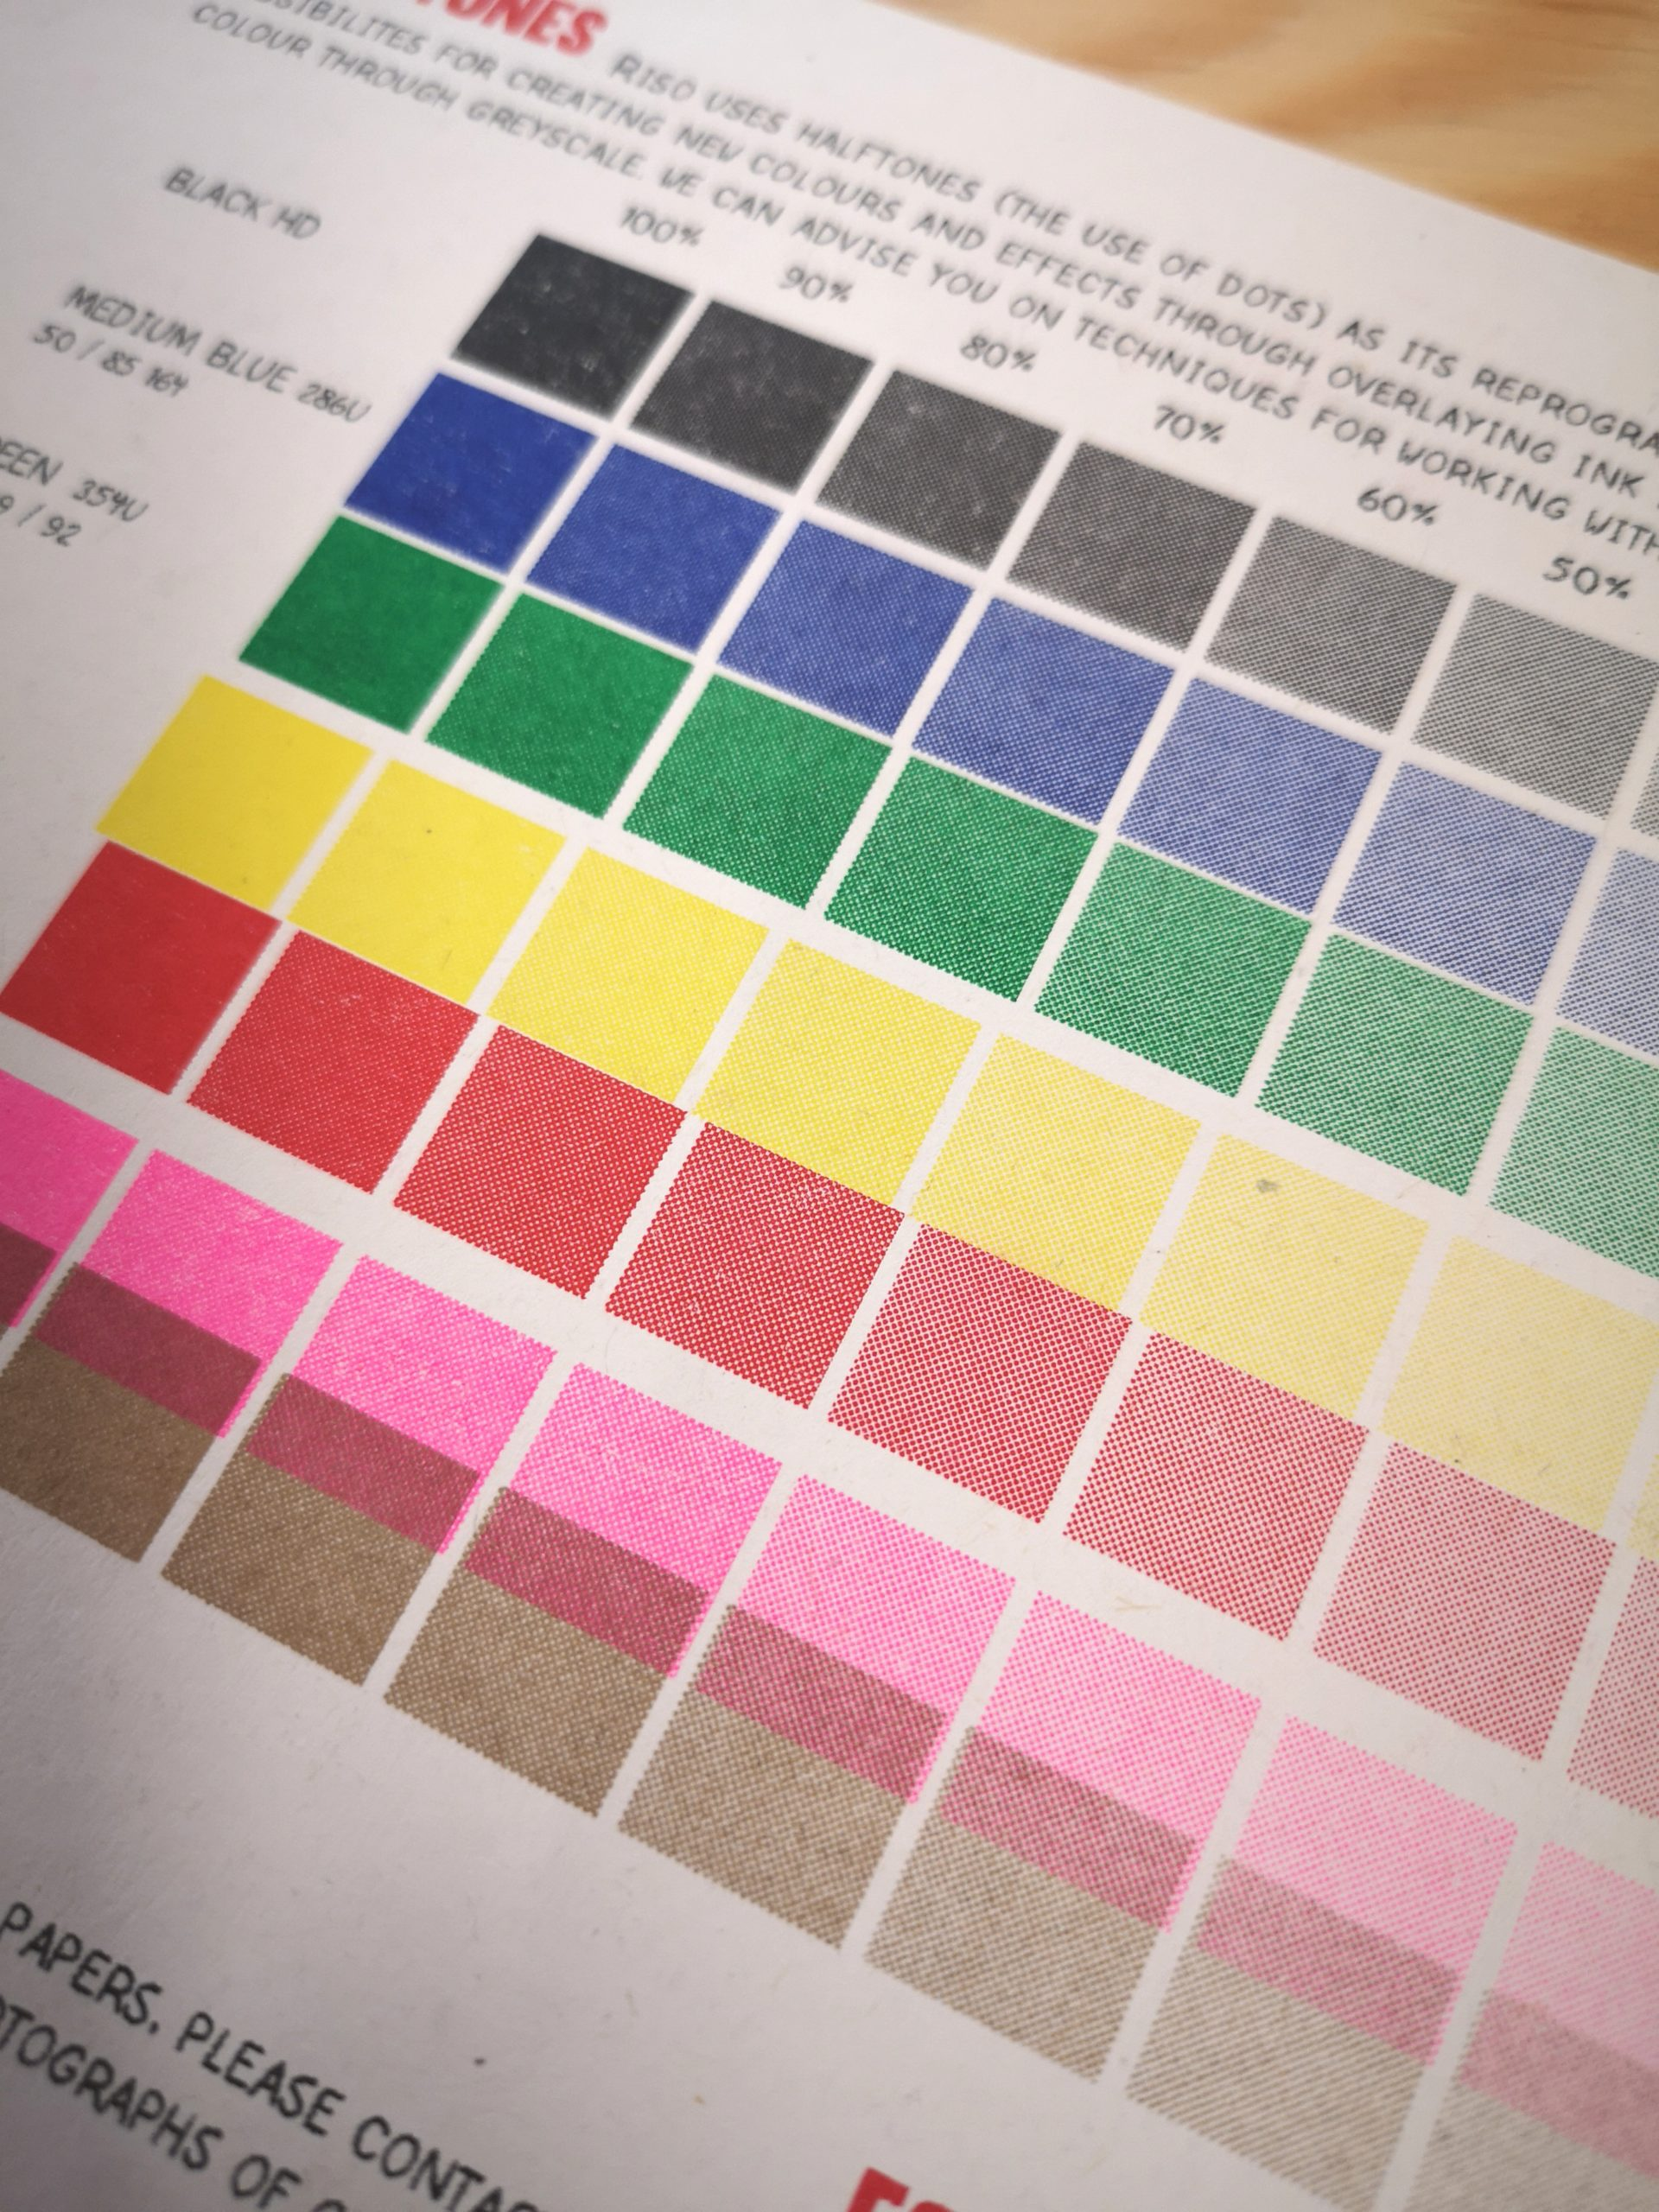 Risograph soya ink colour chart